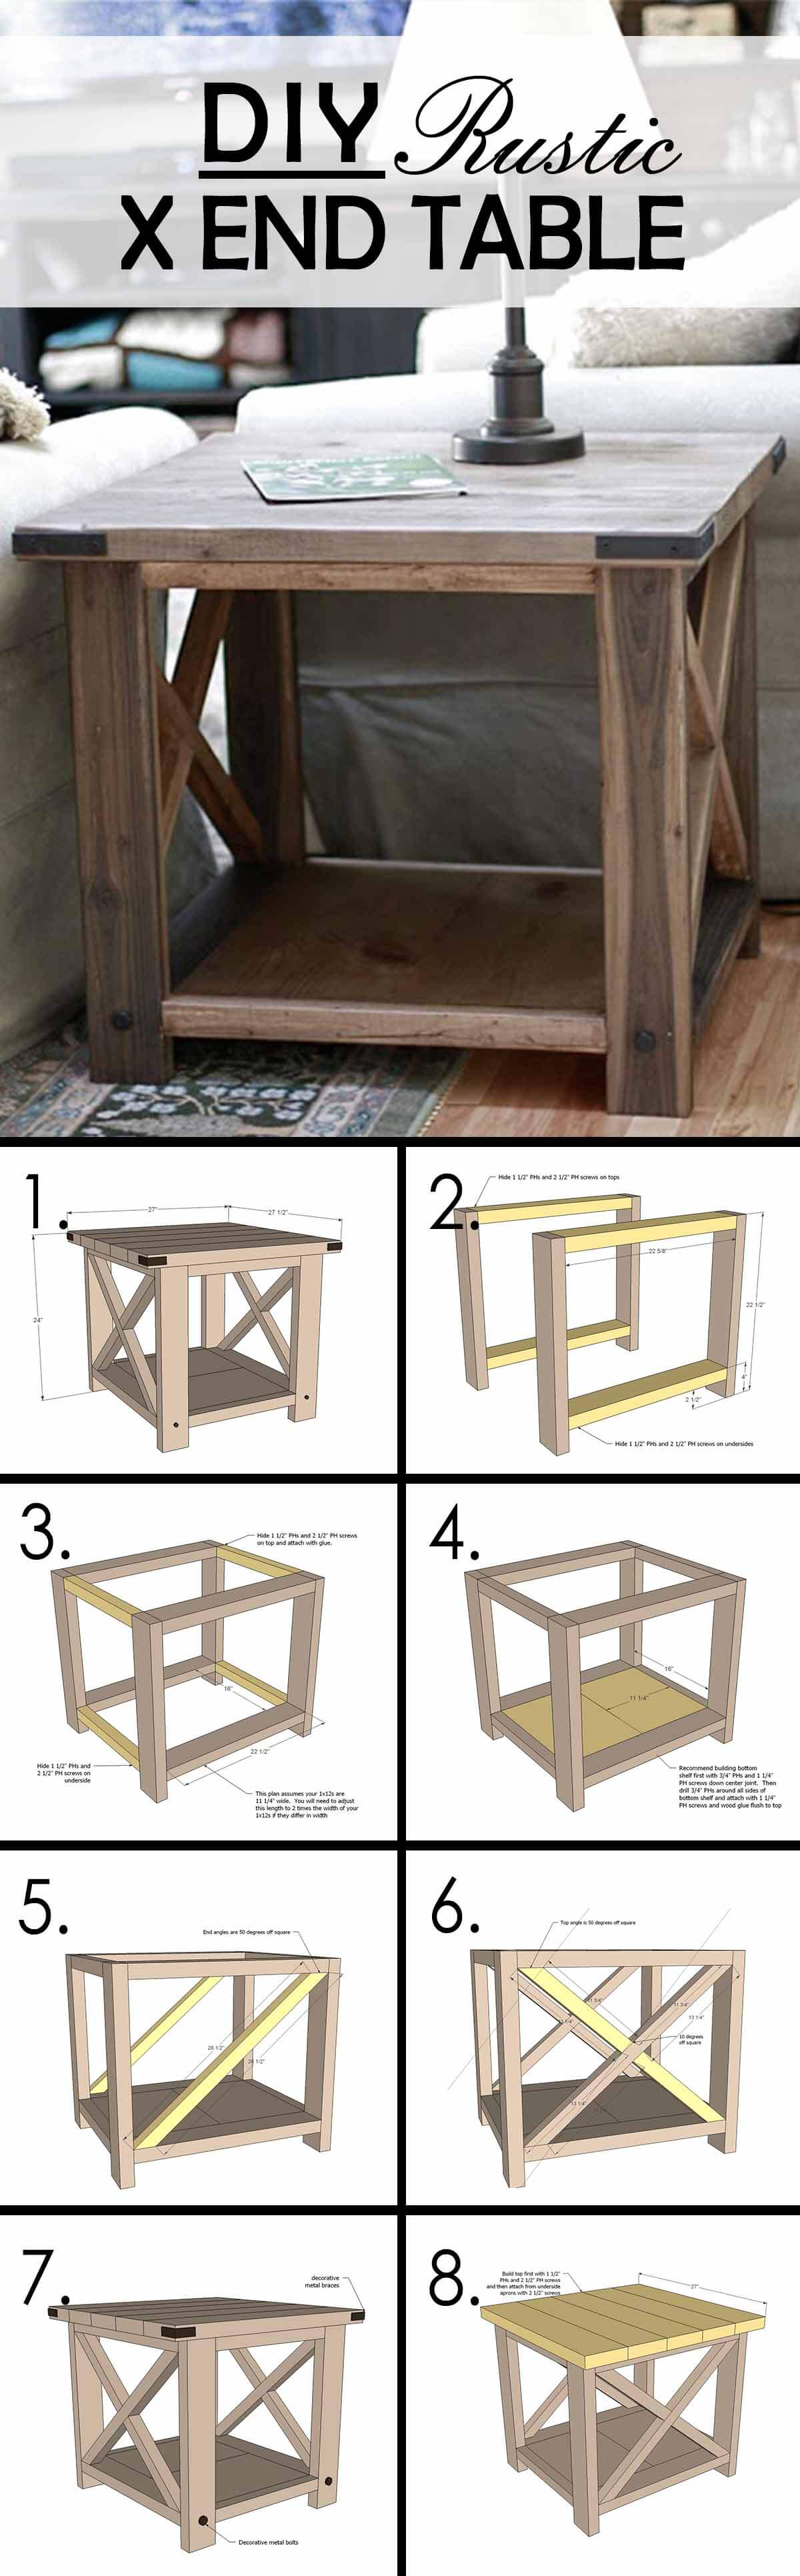 best diy farmhouse coffee table ideas and designs for homebnc end build your own rustic cube tables riverside harmony antique nest wooden replacement glass garden furniture side